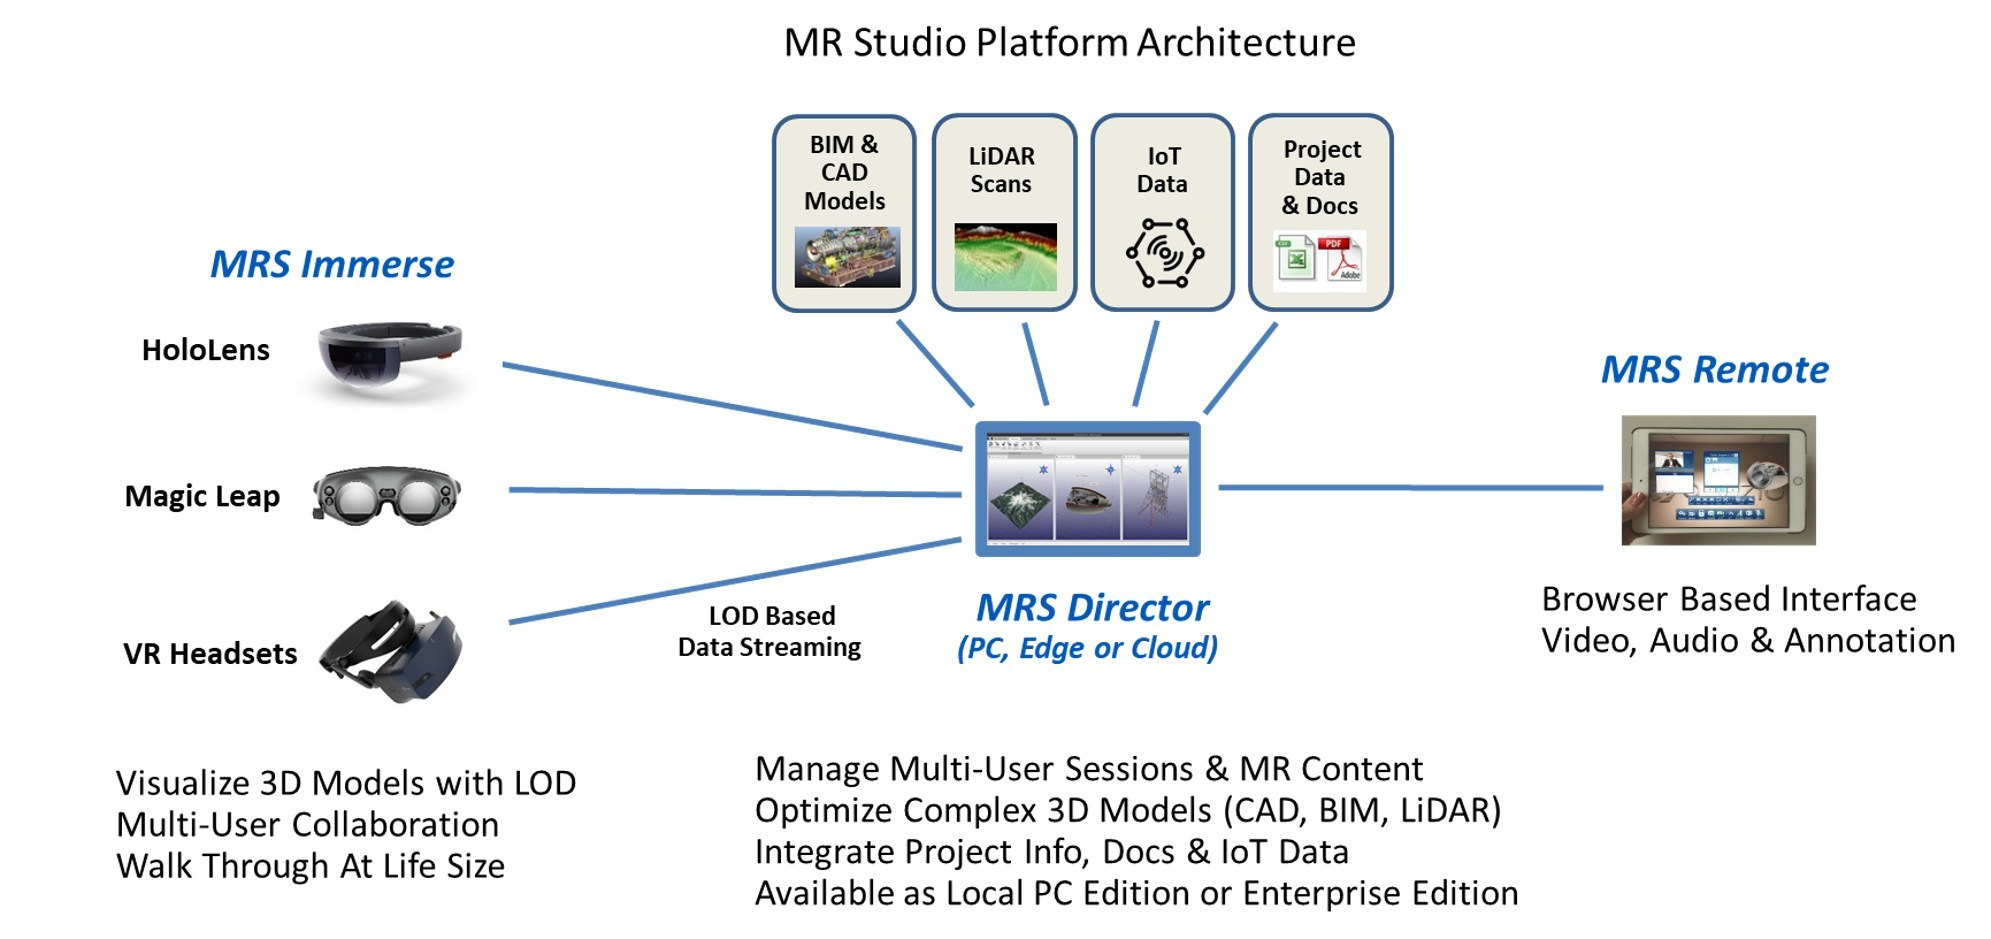 MR Studio Architecture for Augmented, Virtual and Mixed Reality